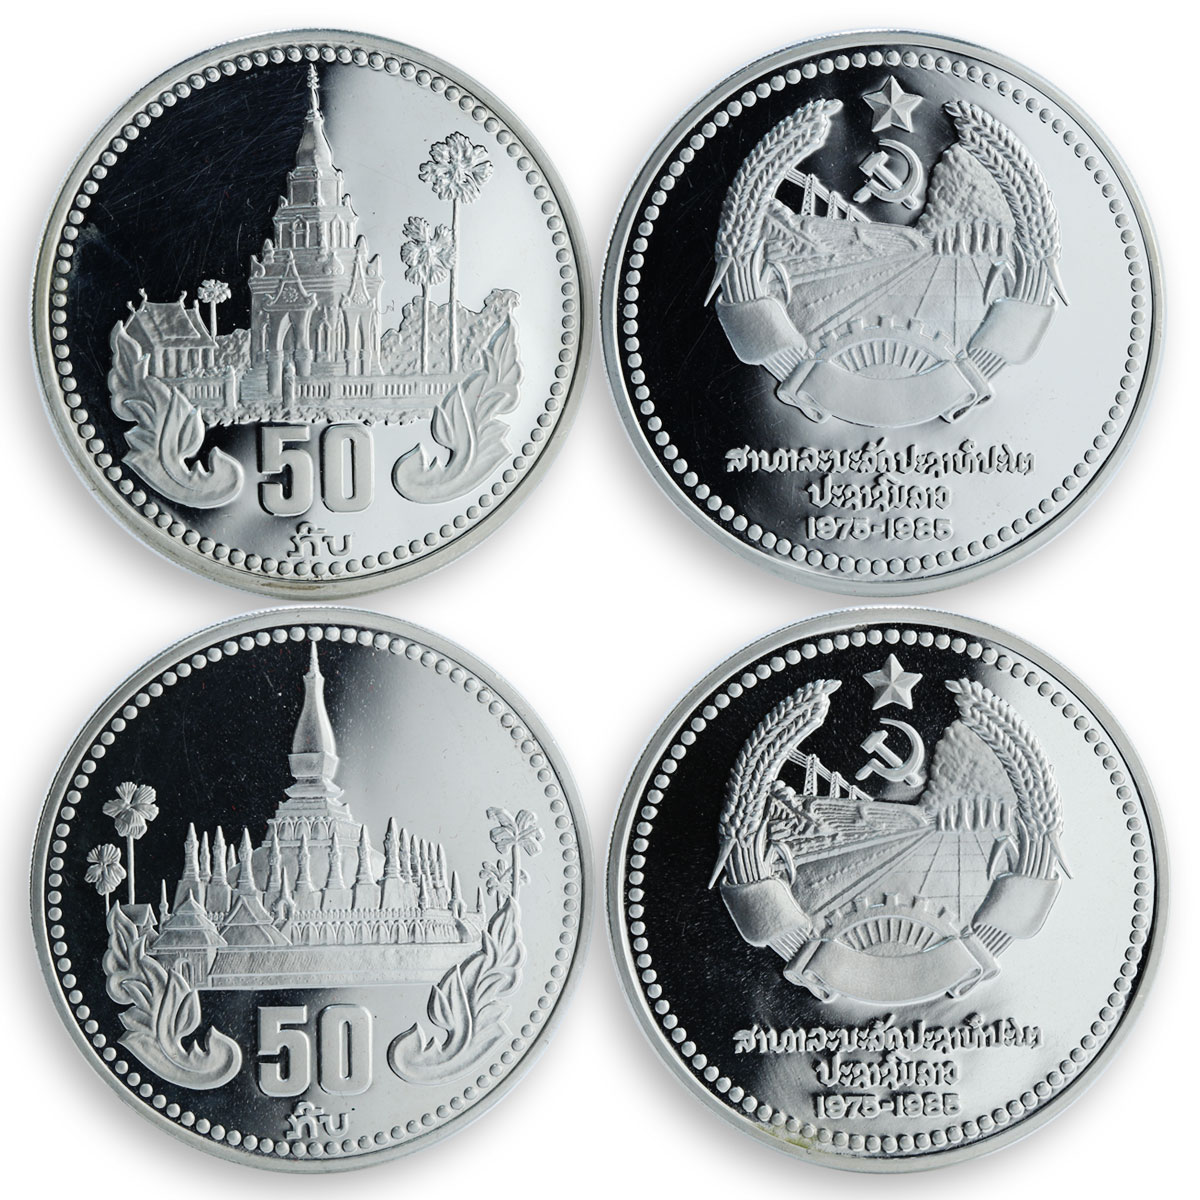 Laos 50 kips set 4 coins 10 years of People's Democratic Republic of Laos 1985